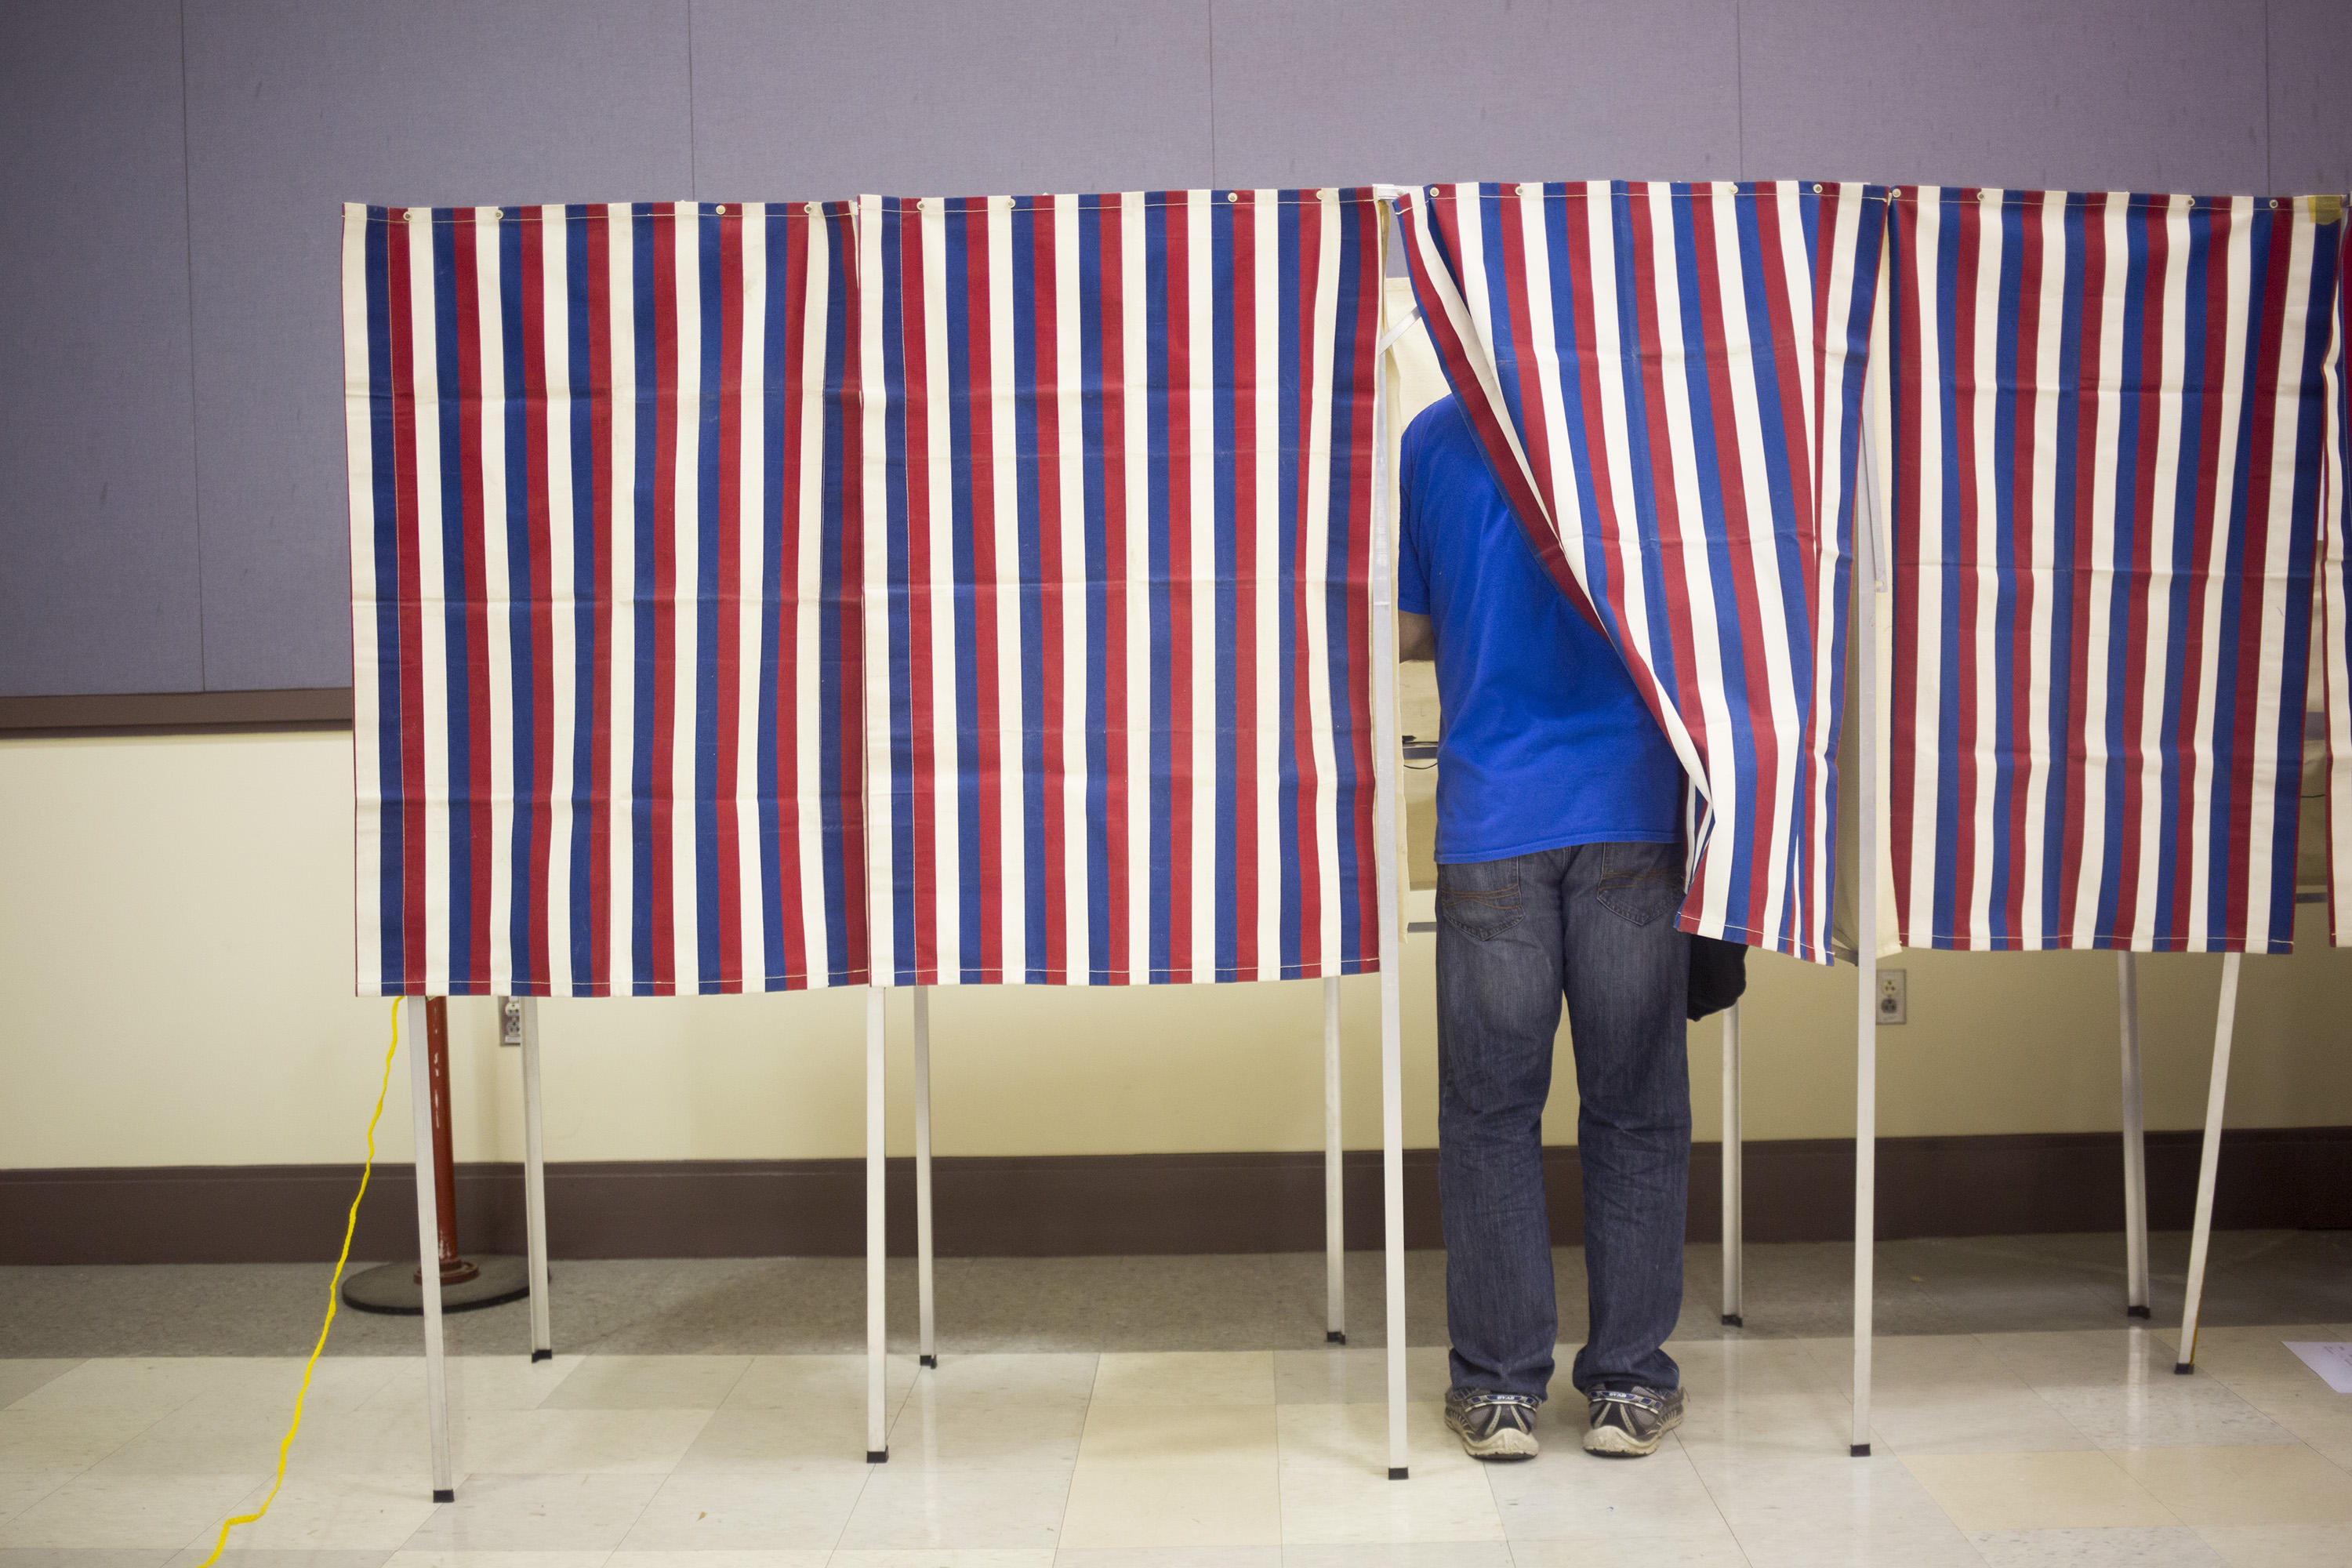 Maine voter in a voting booth on November 8, 2016